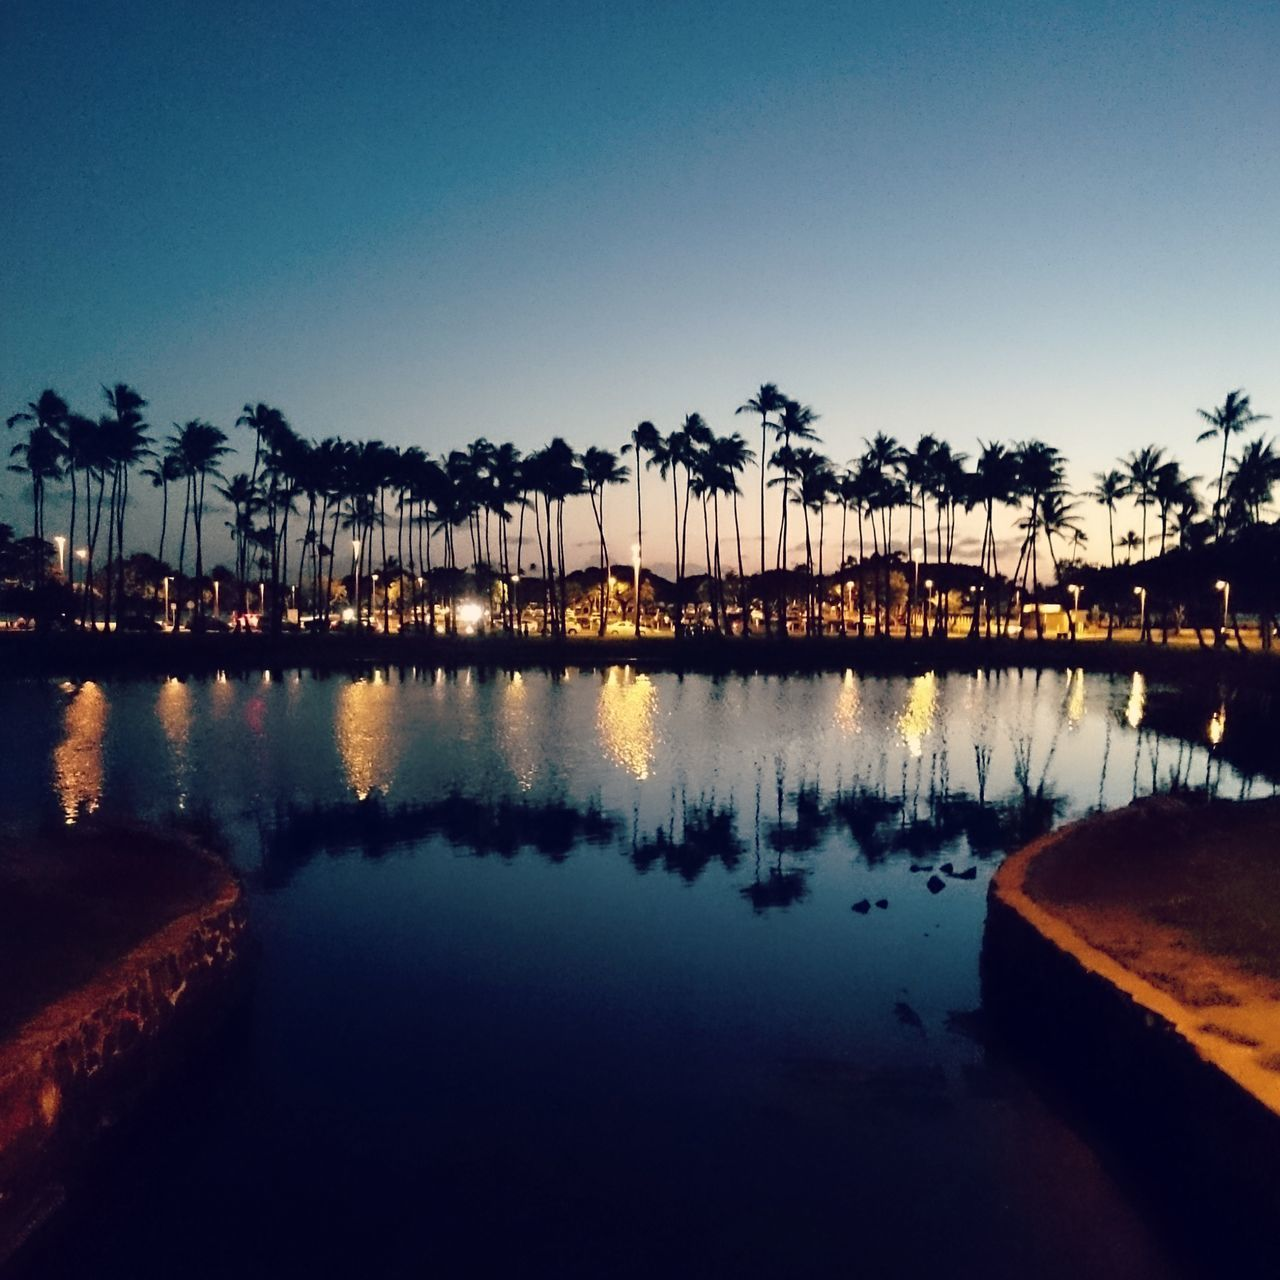 Honolulu  Hawaii Paradise Palm Reflection Water Sunset Sky Silhouette Vacations Nature Night Scenics Palmtree Palm Tree Silhouette Island Island Holiday Island Resort EyeEmNewHere